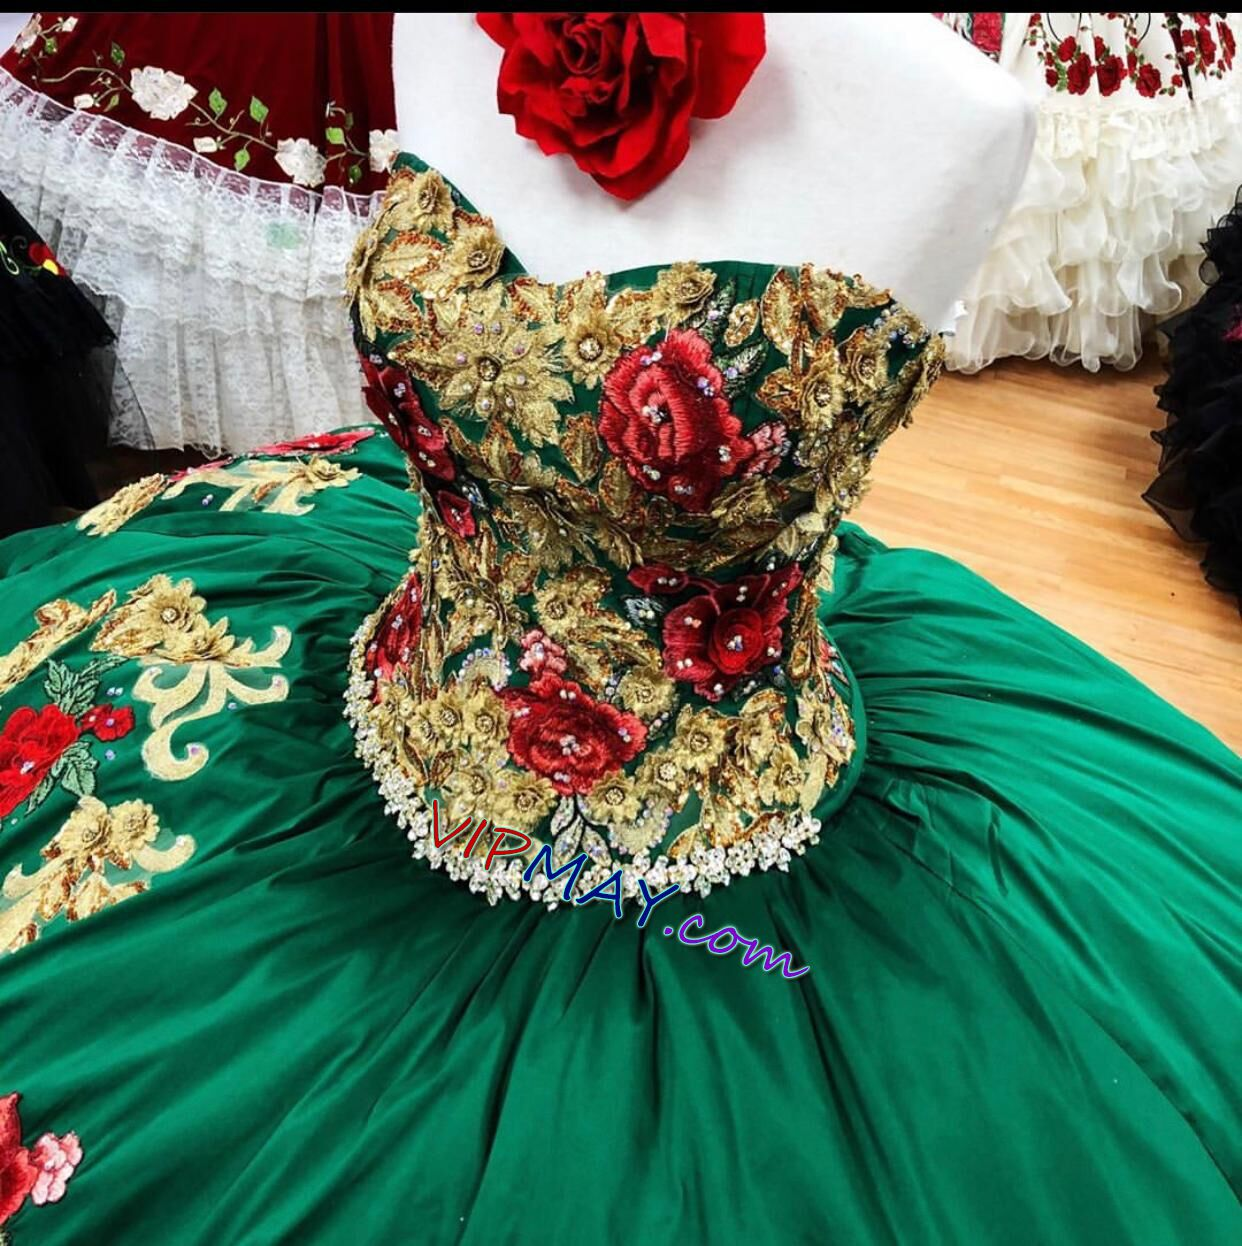 quinceanera dress with a train,virgin mary quinceanera dress,2021 quinceanera dress,virgen de guadalupe quinceanera dress,virgin mary charo quinceanera dress,satin quinceanera dress,floral embroidered quinceanera dress,green and gold quinceanera dress,green quinceanera dress,traditional mexican quinceanera dress,mexican themed quinceanera dress,